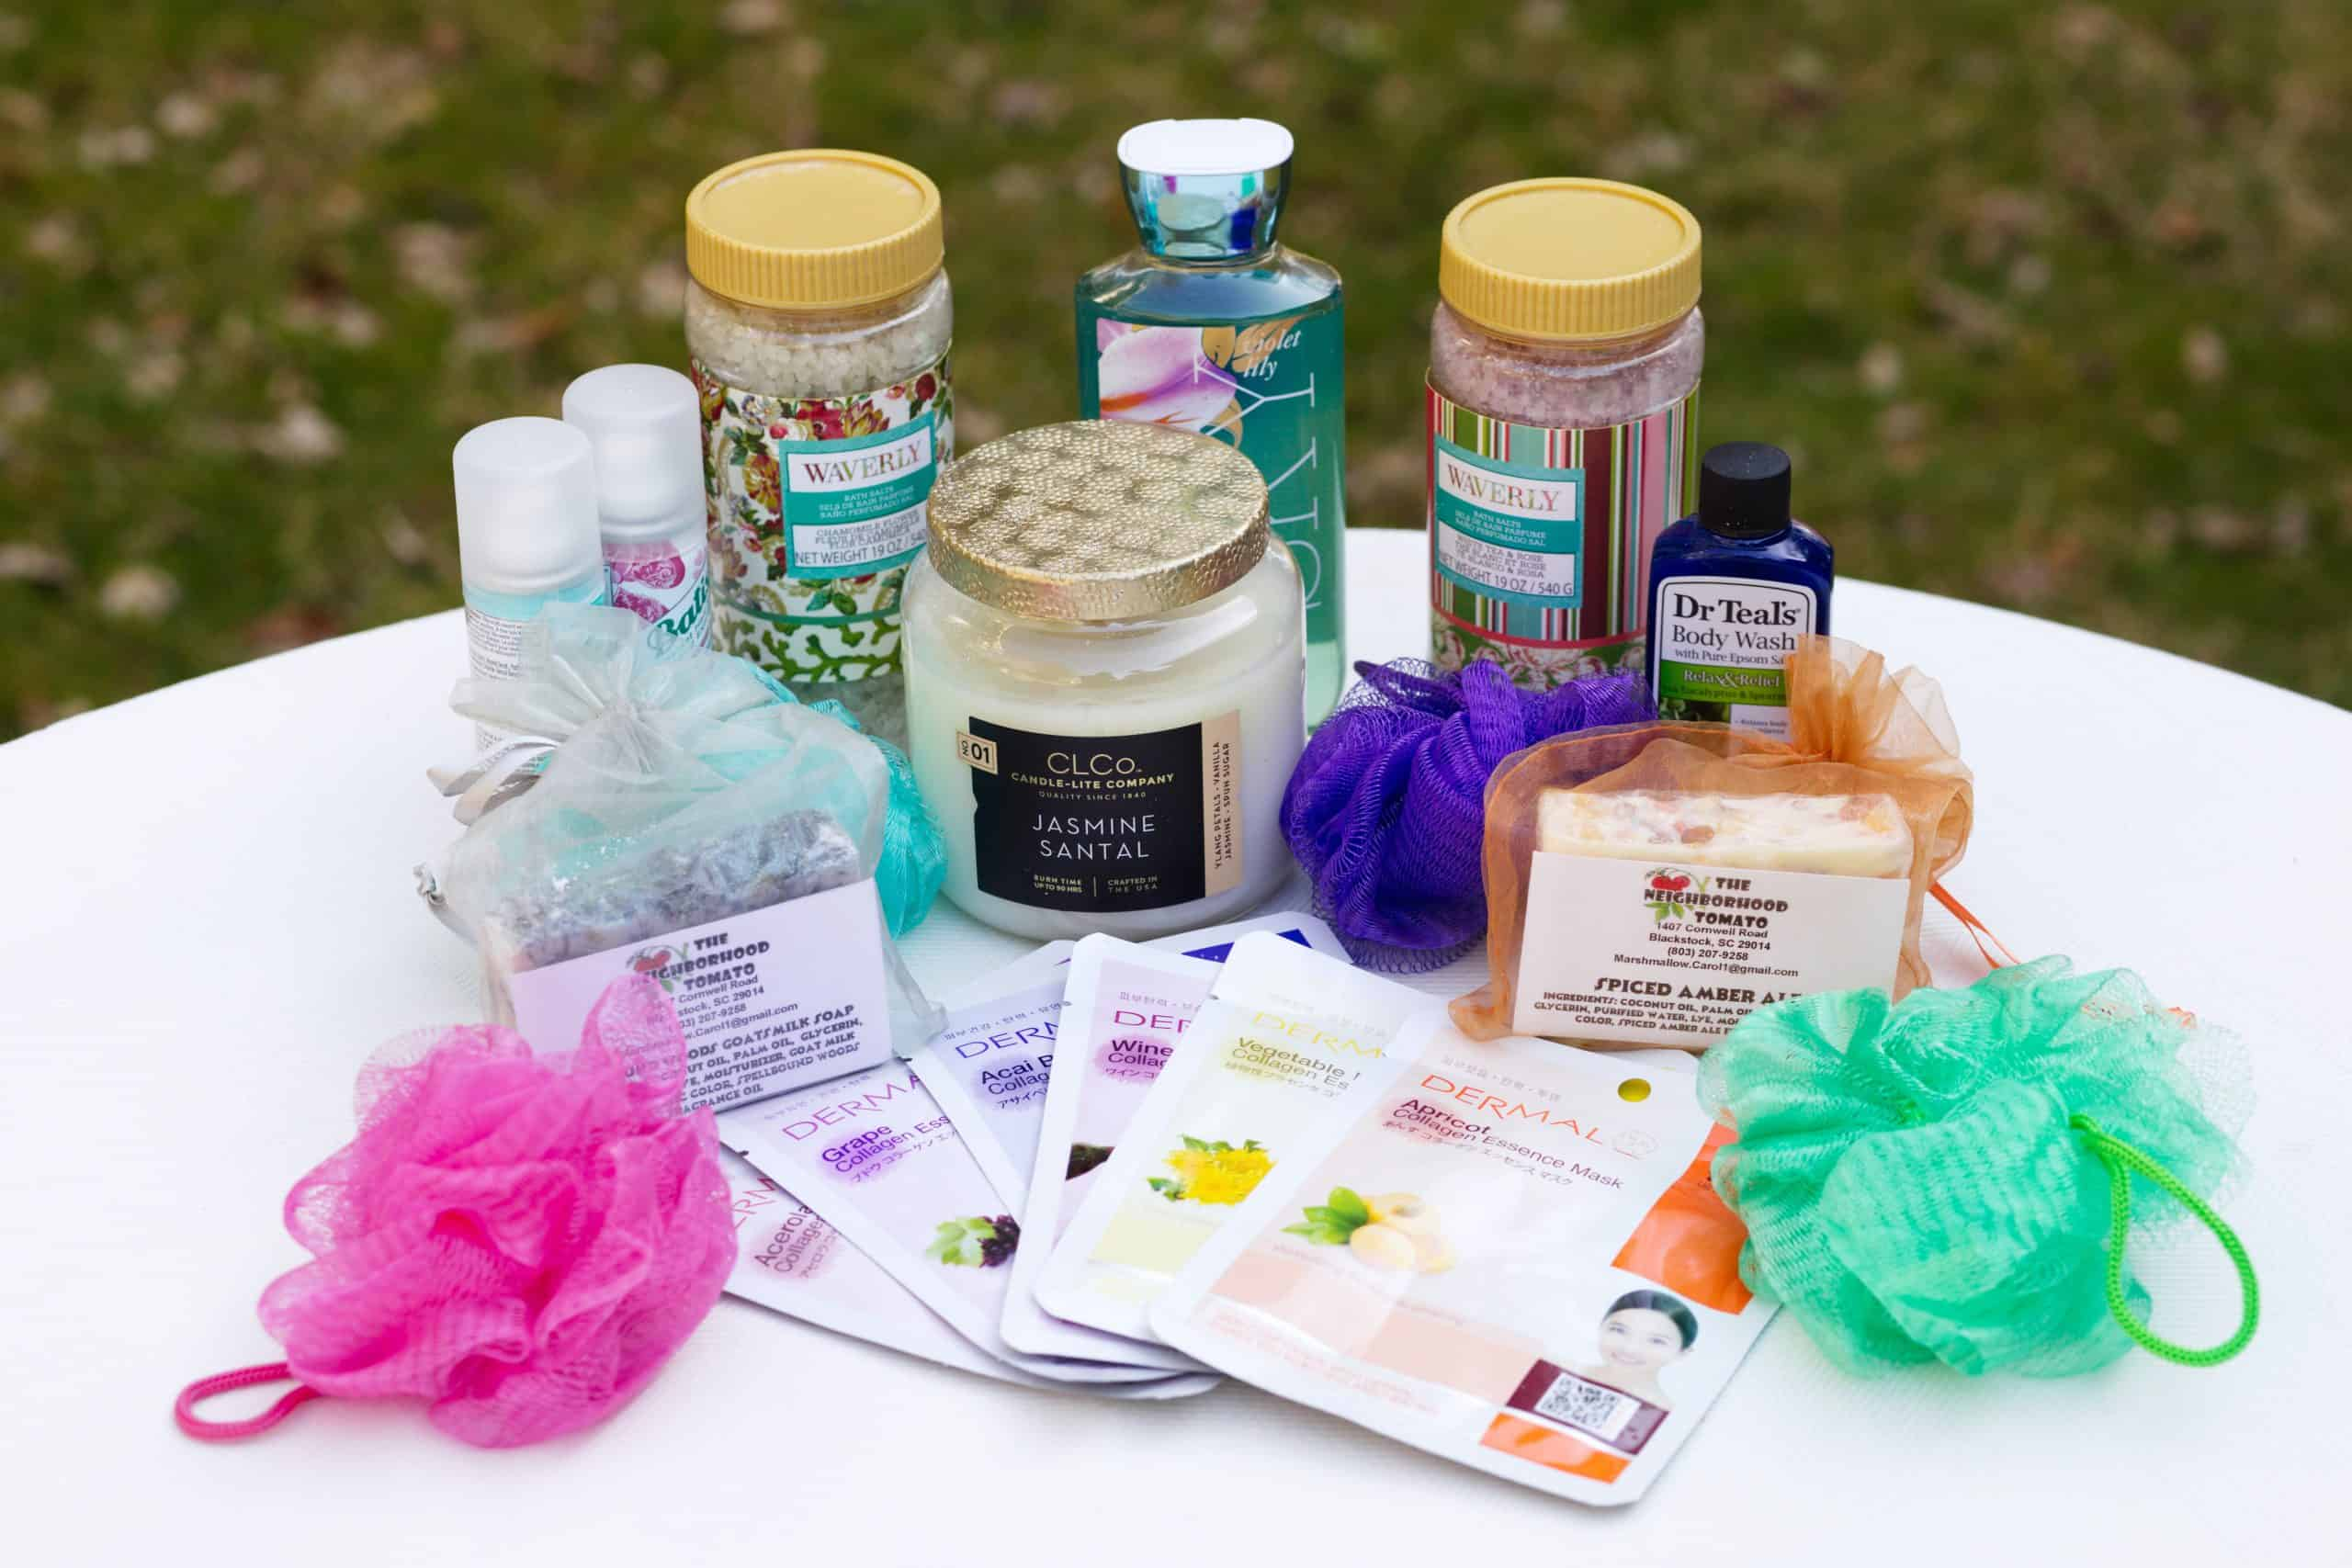 Spa day gift basket: Items for bath basket